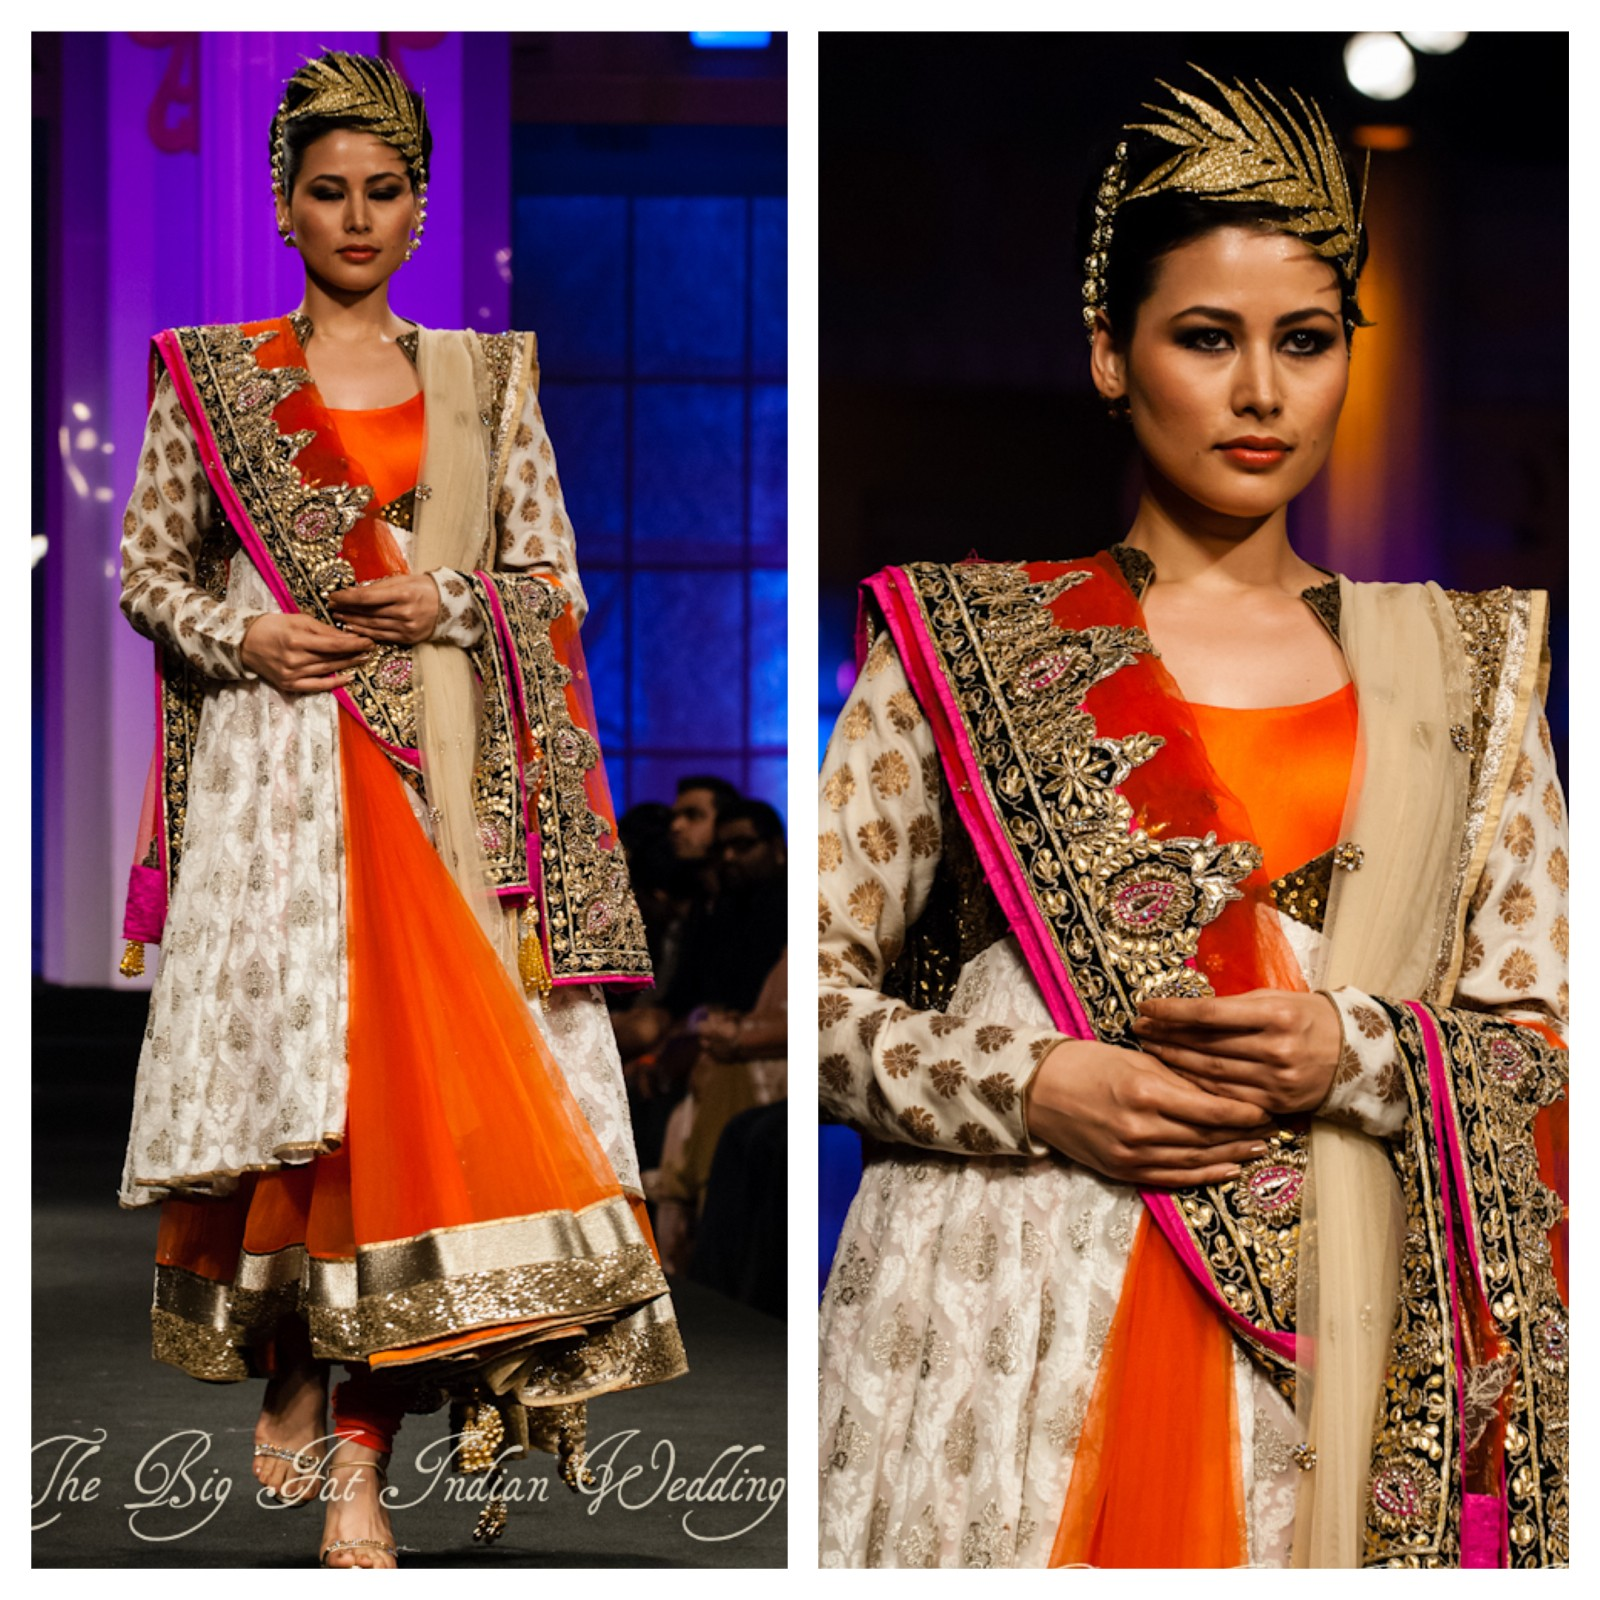 Vikram Phadnis' Stunning Wedding Collection at Aamby ...